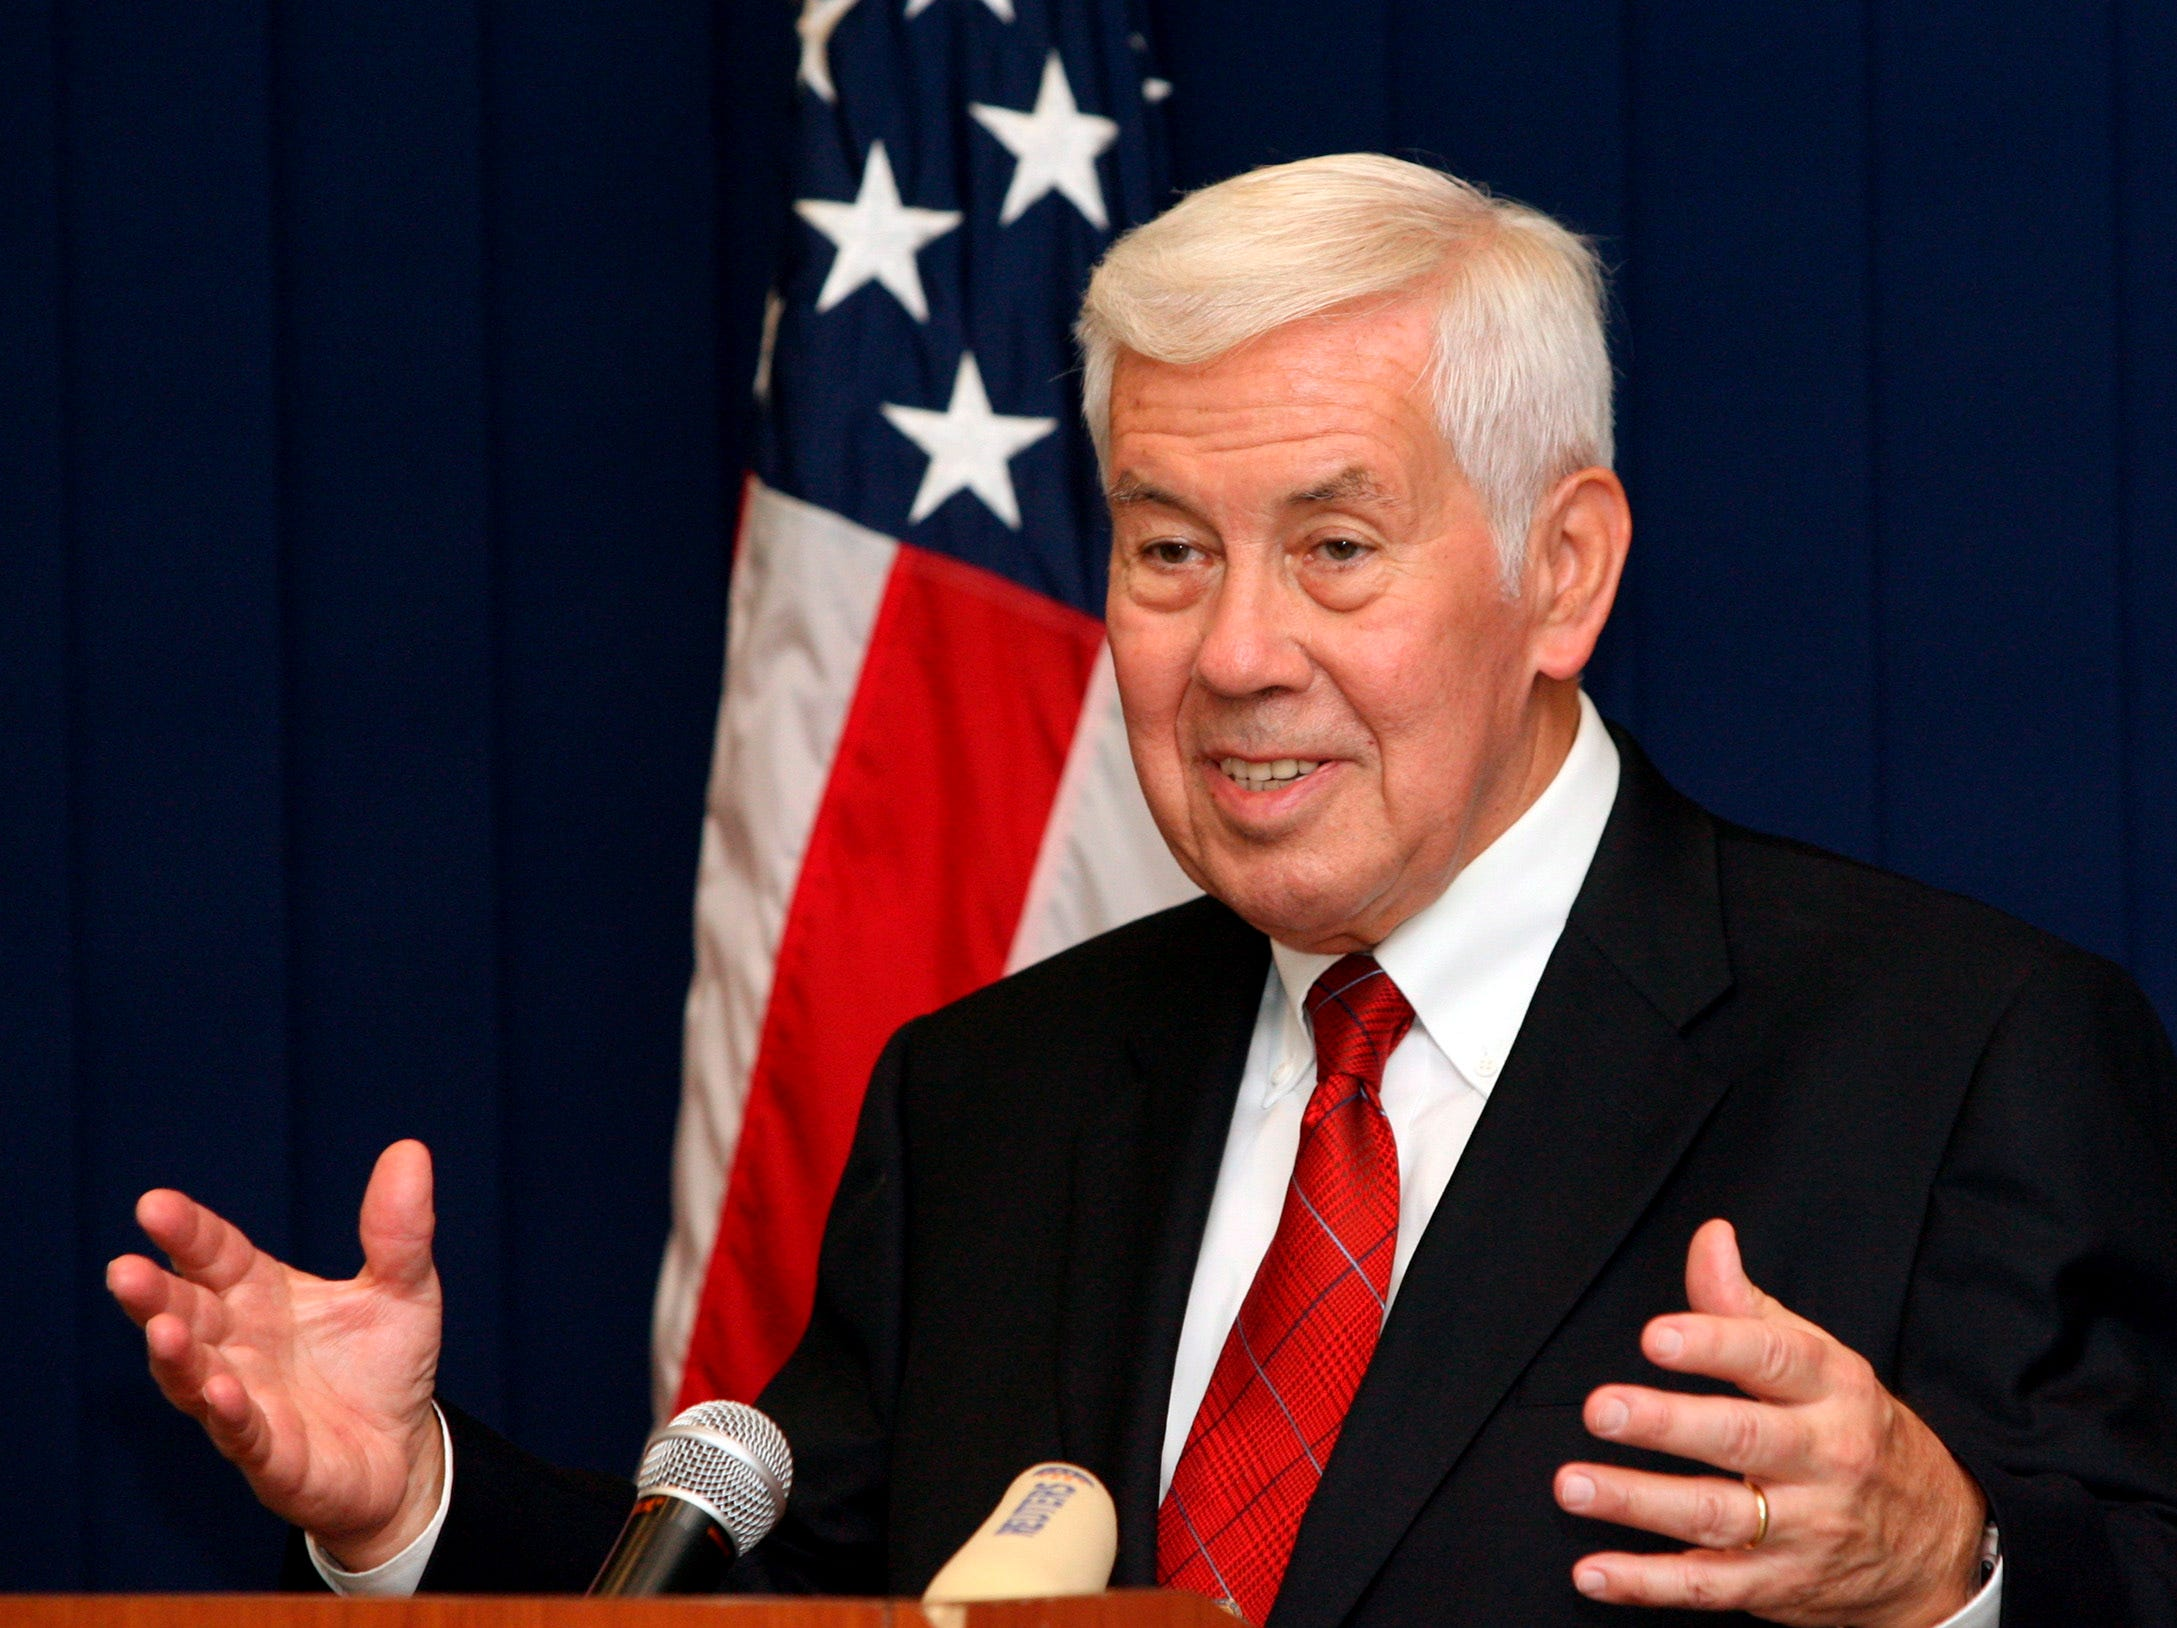 Senator Richard Lugar speaks during his press conference in Tbilisi, Ga. on August 24, 2008. Former Indiana Sen. Richard Lugar, a Republican foreign policy sage known for leading efforts to help the former Soviet states dismantle and secure much of their nuclear arsenal, died Sunday, April 28, 2019 at the Inova Fairfax Heart and Vascular Institute in Virginia. He was 87.